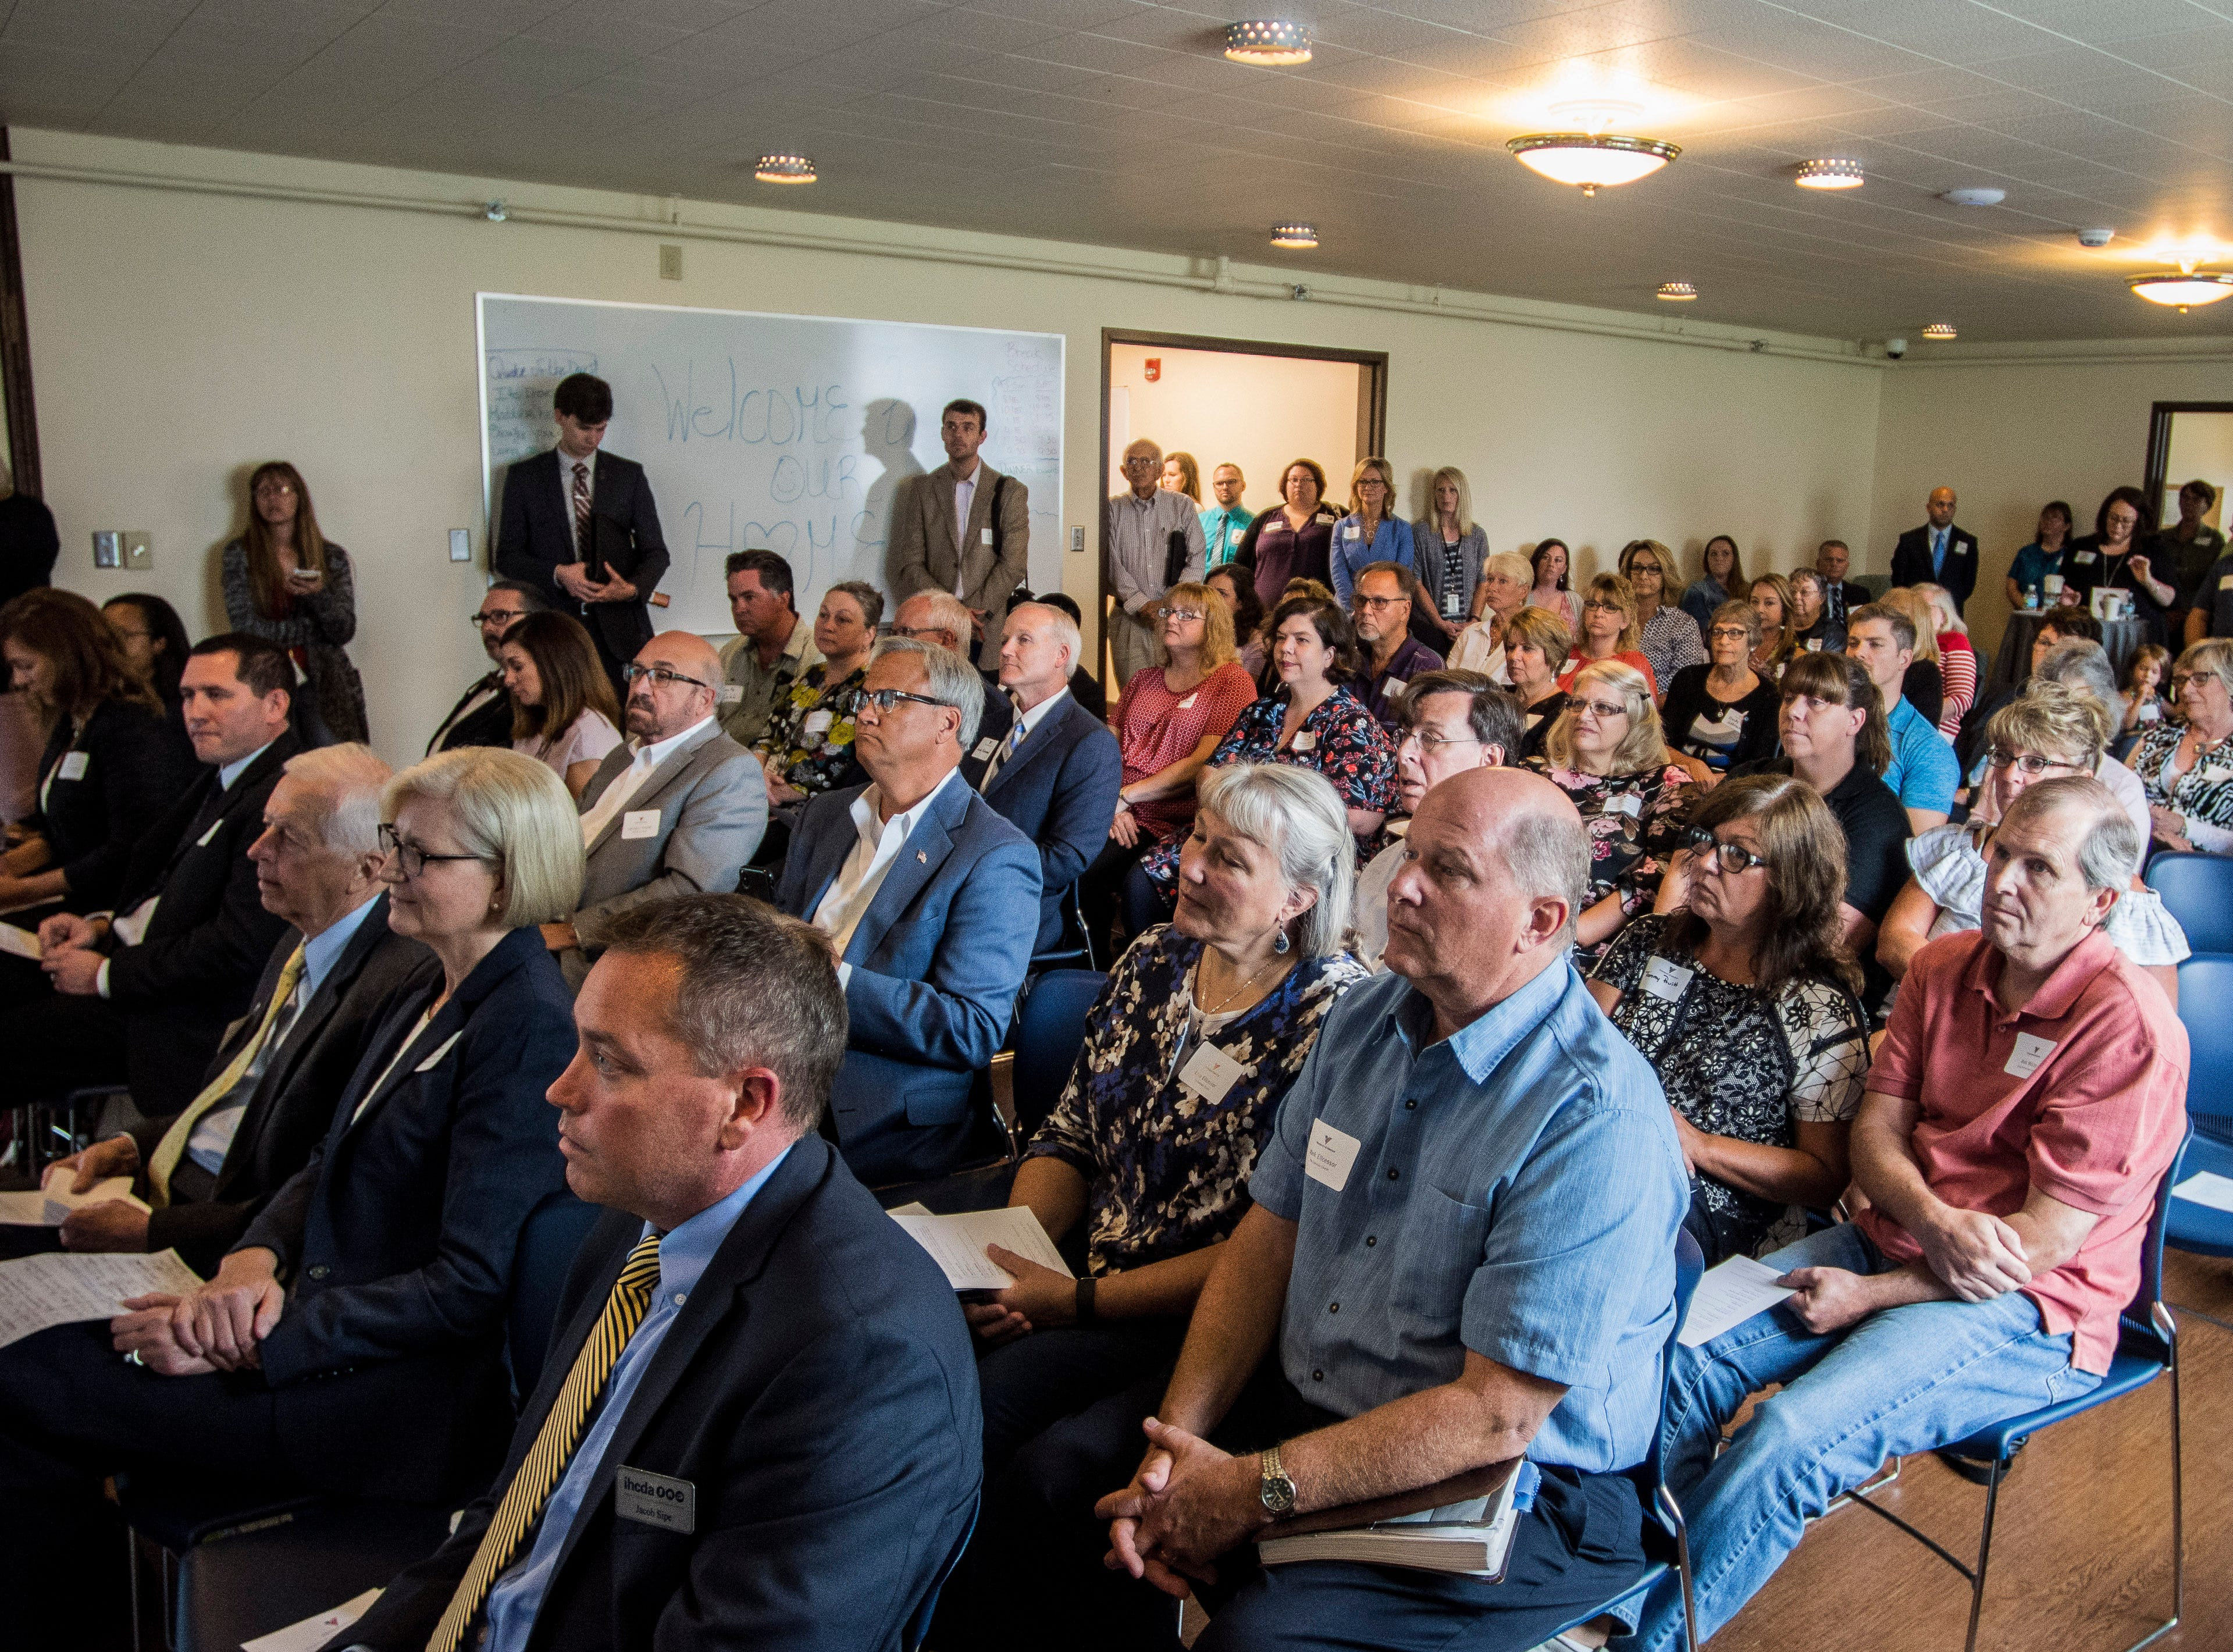 More than 75 people listen during a news conference celebrating the opening of the Winchester House, a new drug treatment facility for women, in Winchester, Ind., on Wednesday, Aug. 1, 2018.